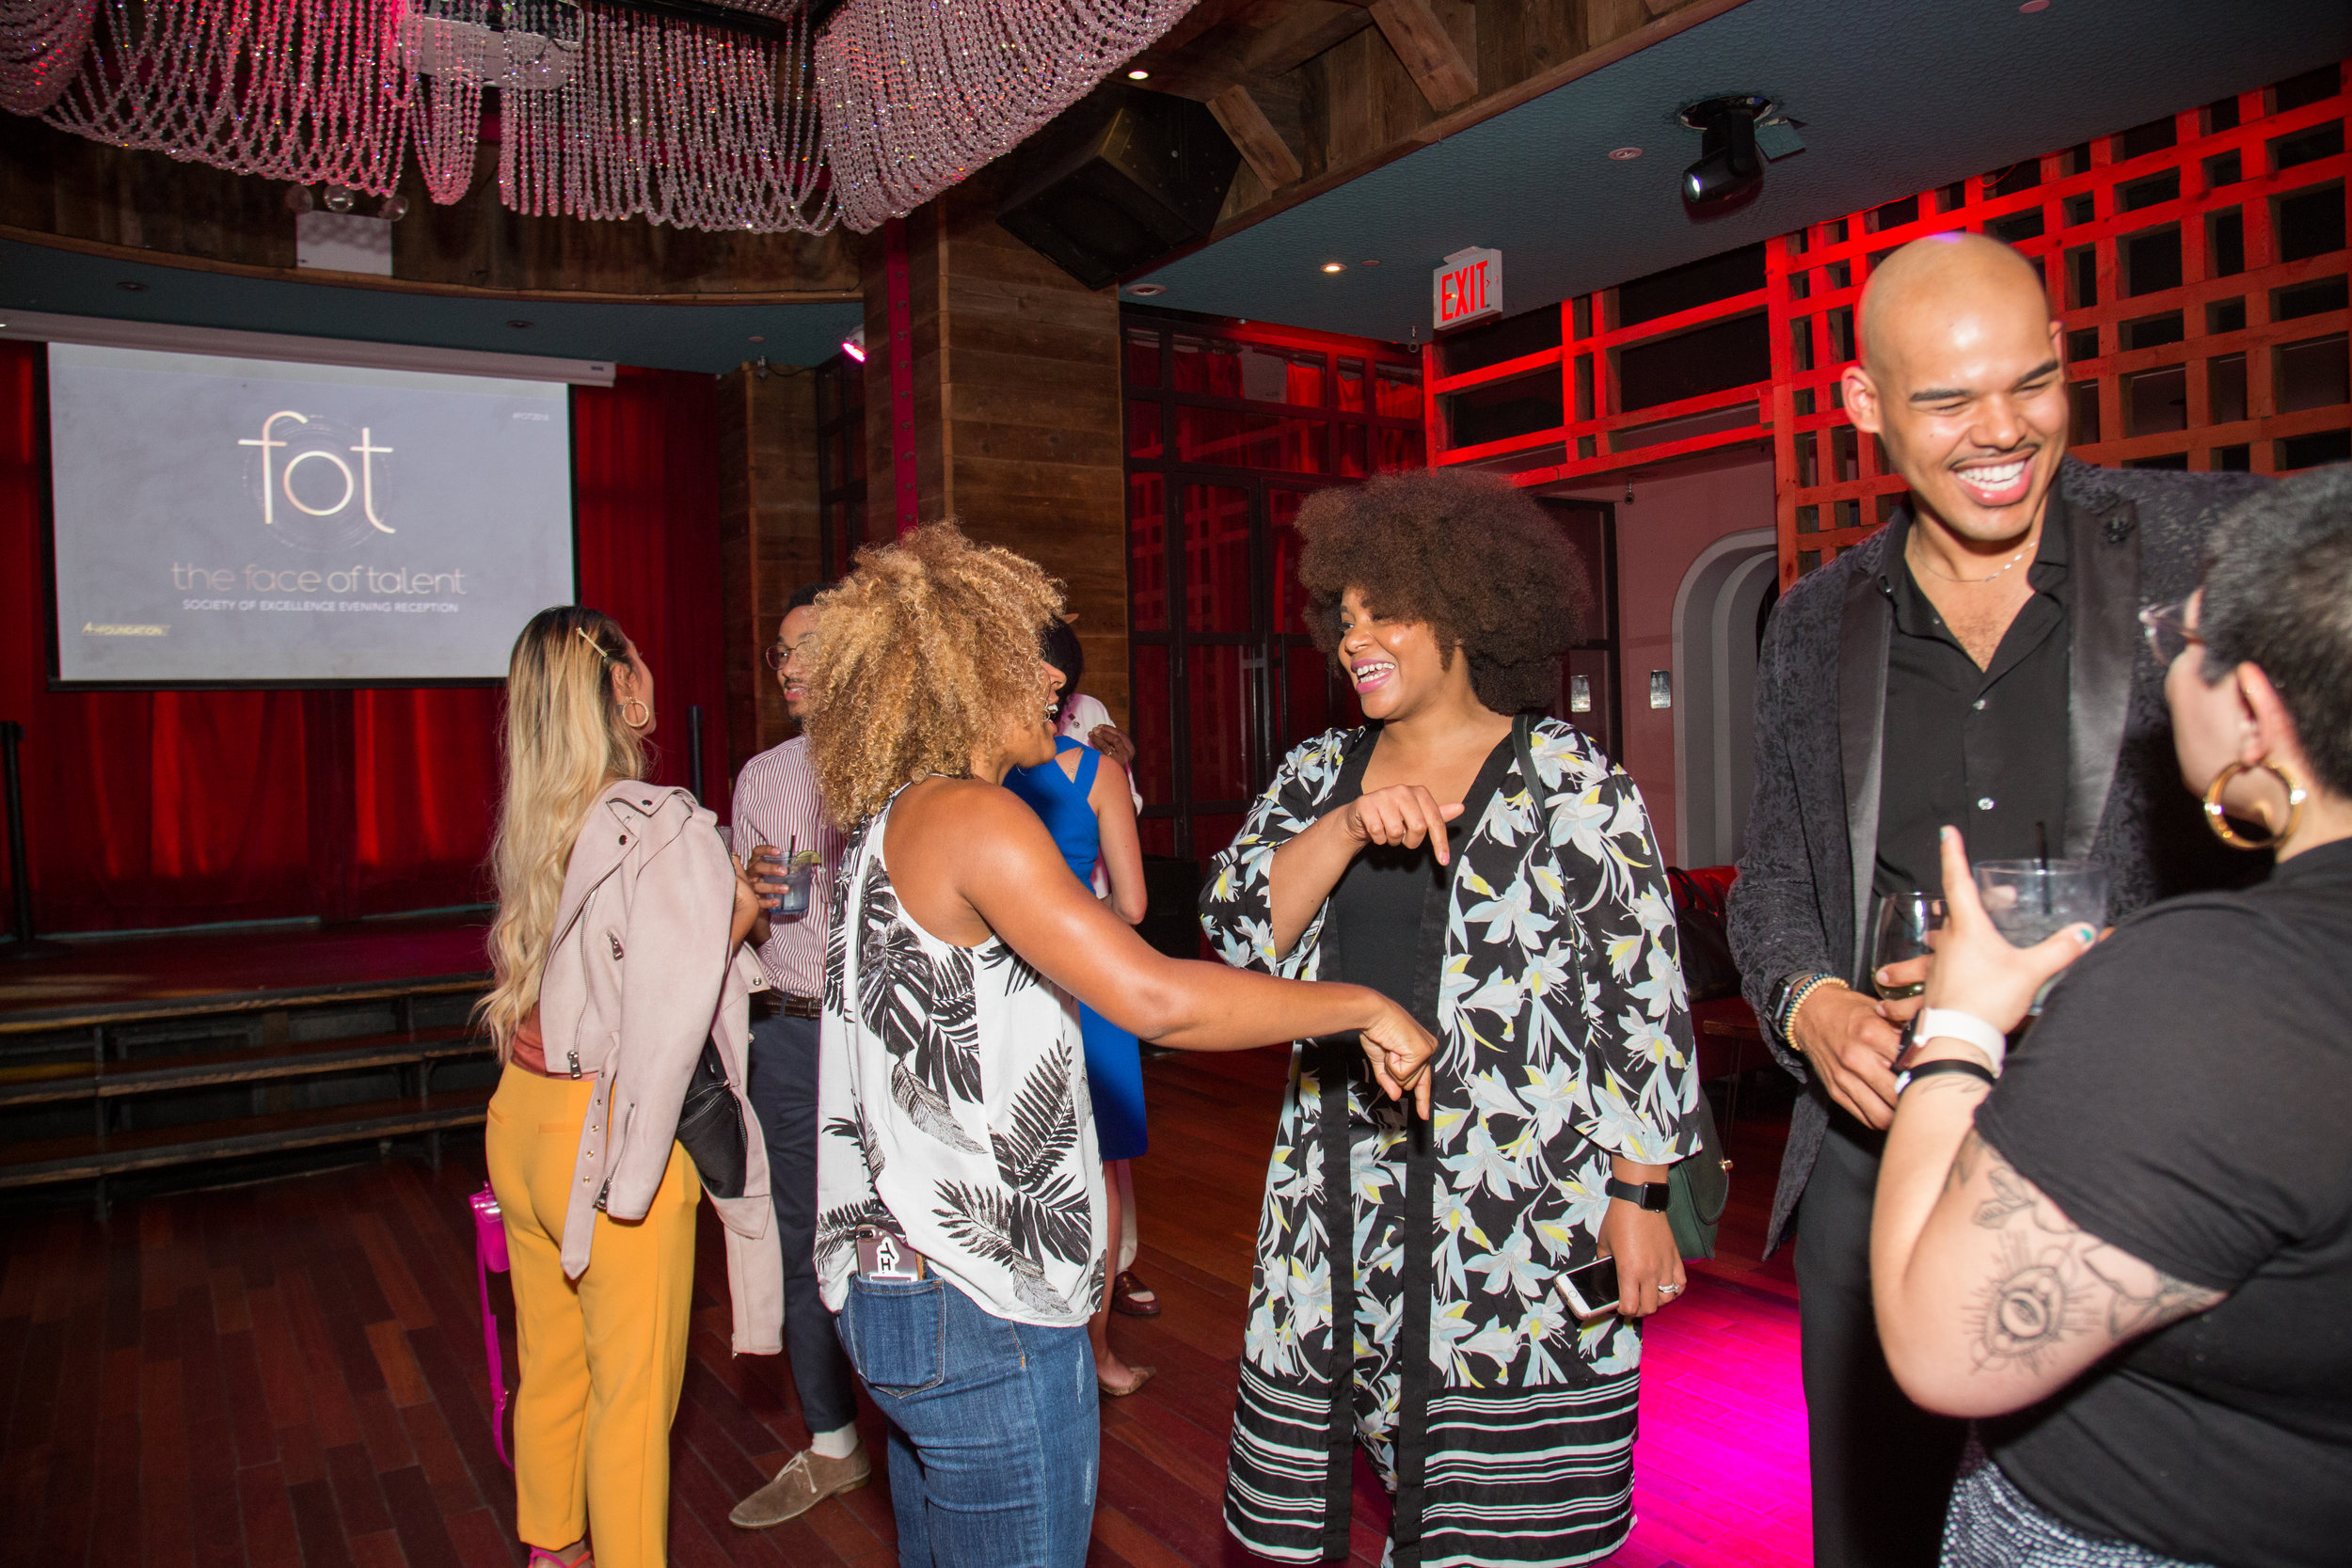 4As_MAIP_FOT_Reception_2018_Margarita_Corporan-47.jpg